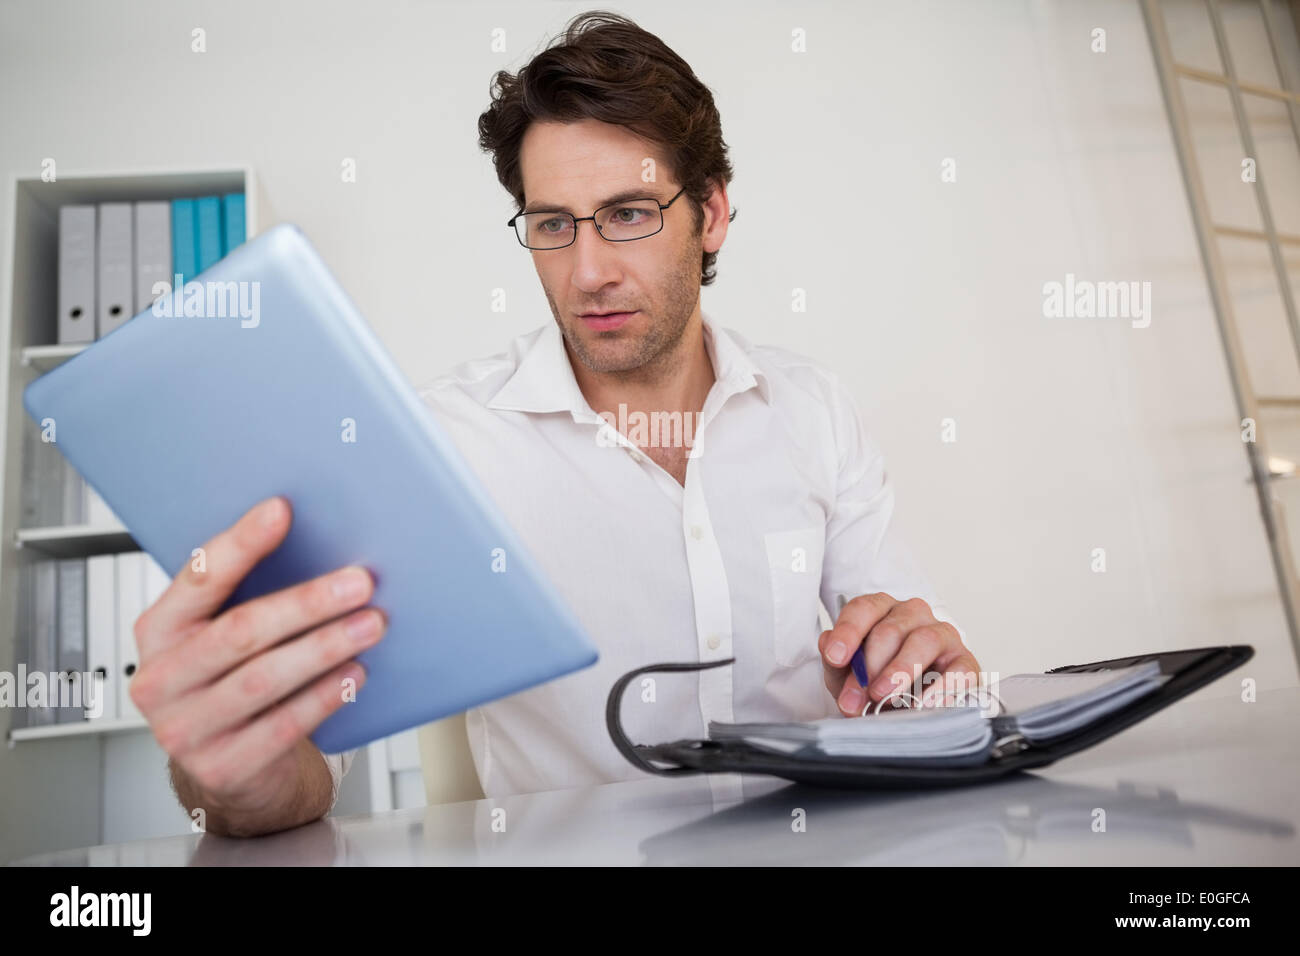 Casual businessman organizing his schedule at his desk - Stock Image